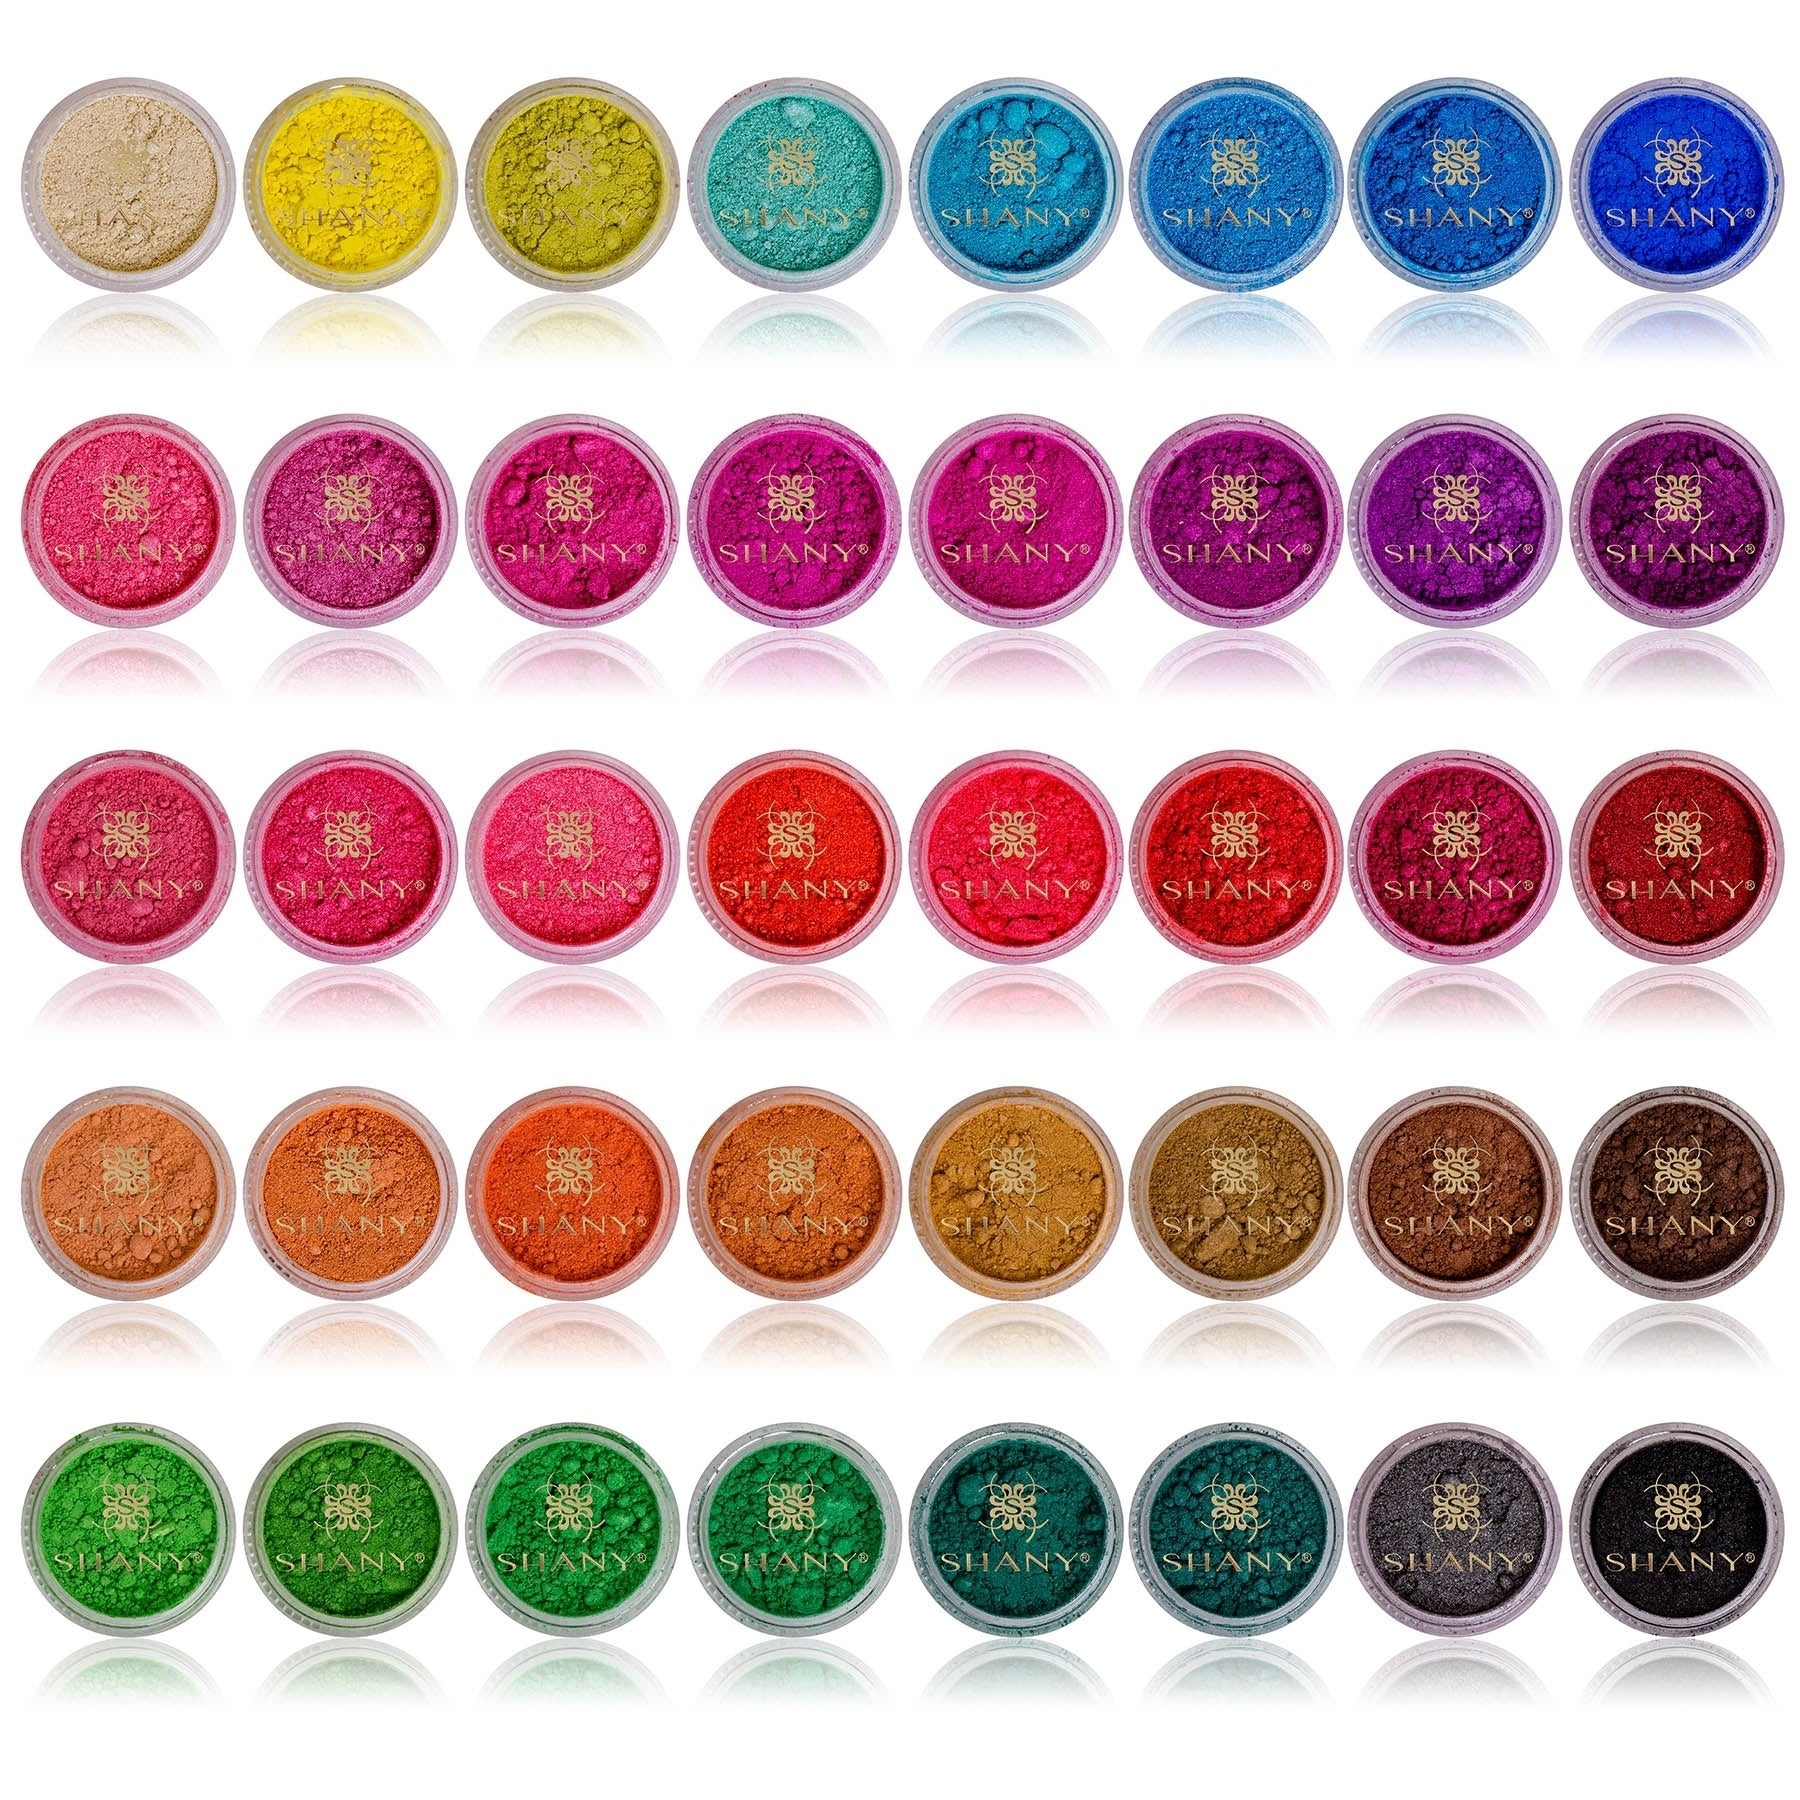 SHANY Cosmetics Shany Mineral Eye Sparkle 40 Color Stackable Eyeshadow Jars at Sears.com